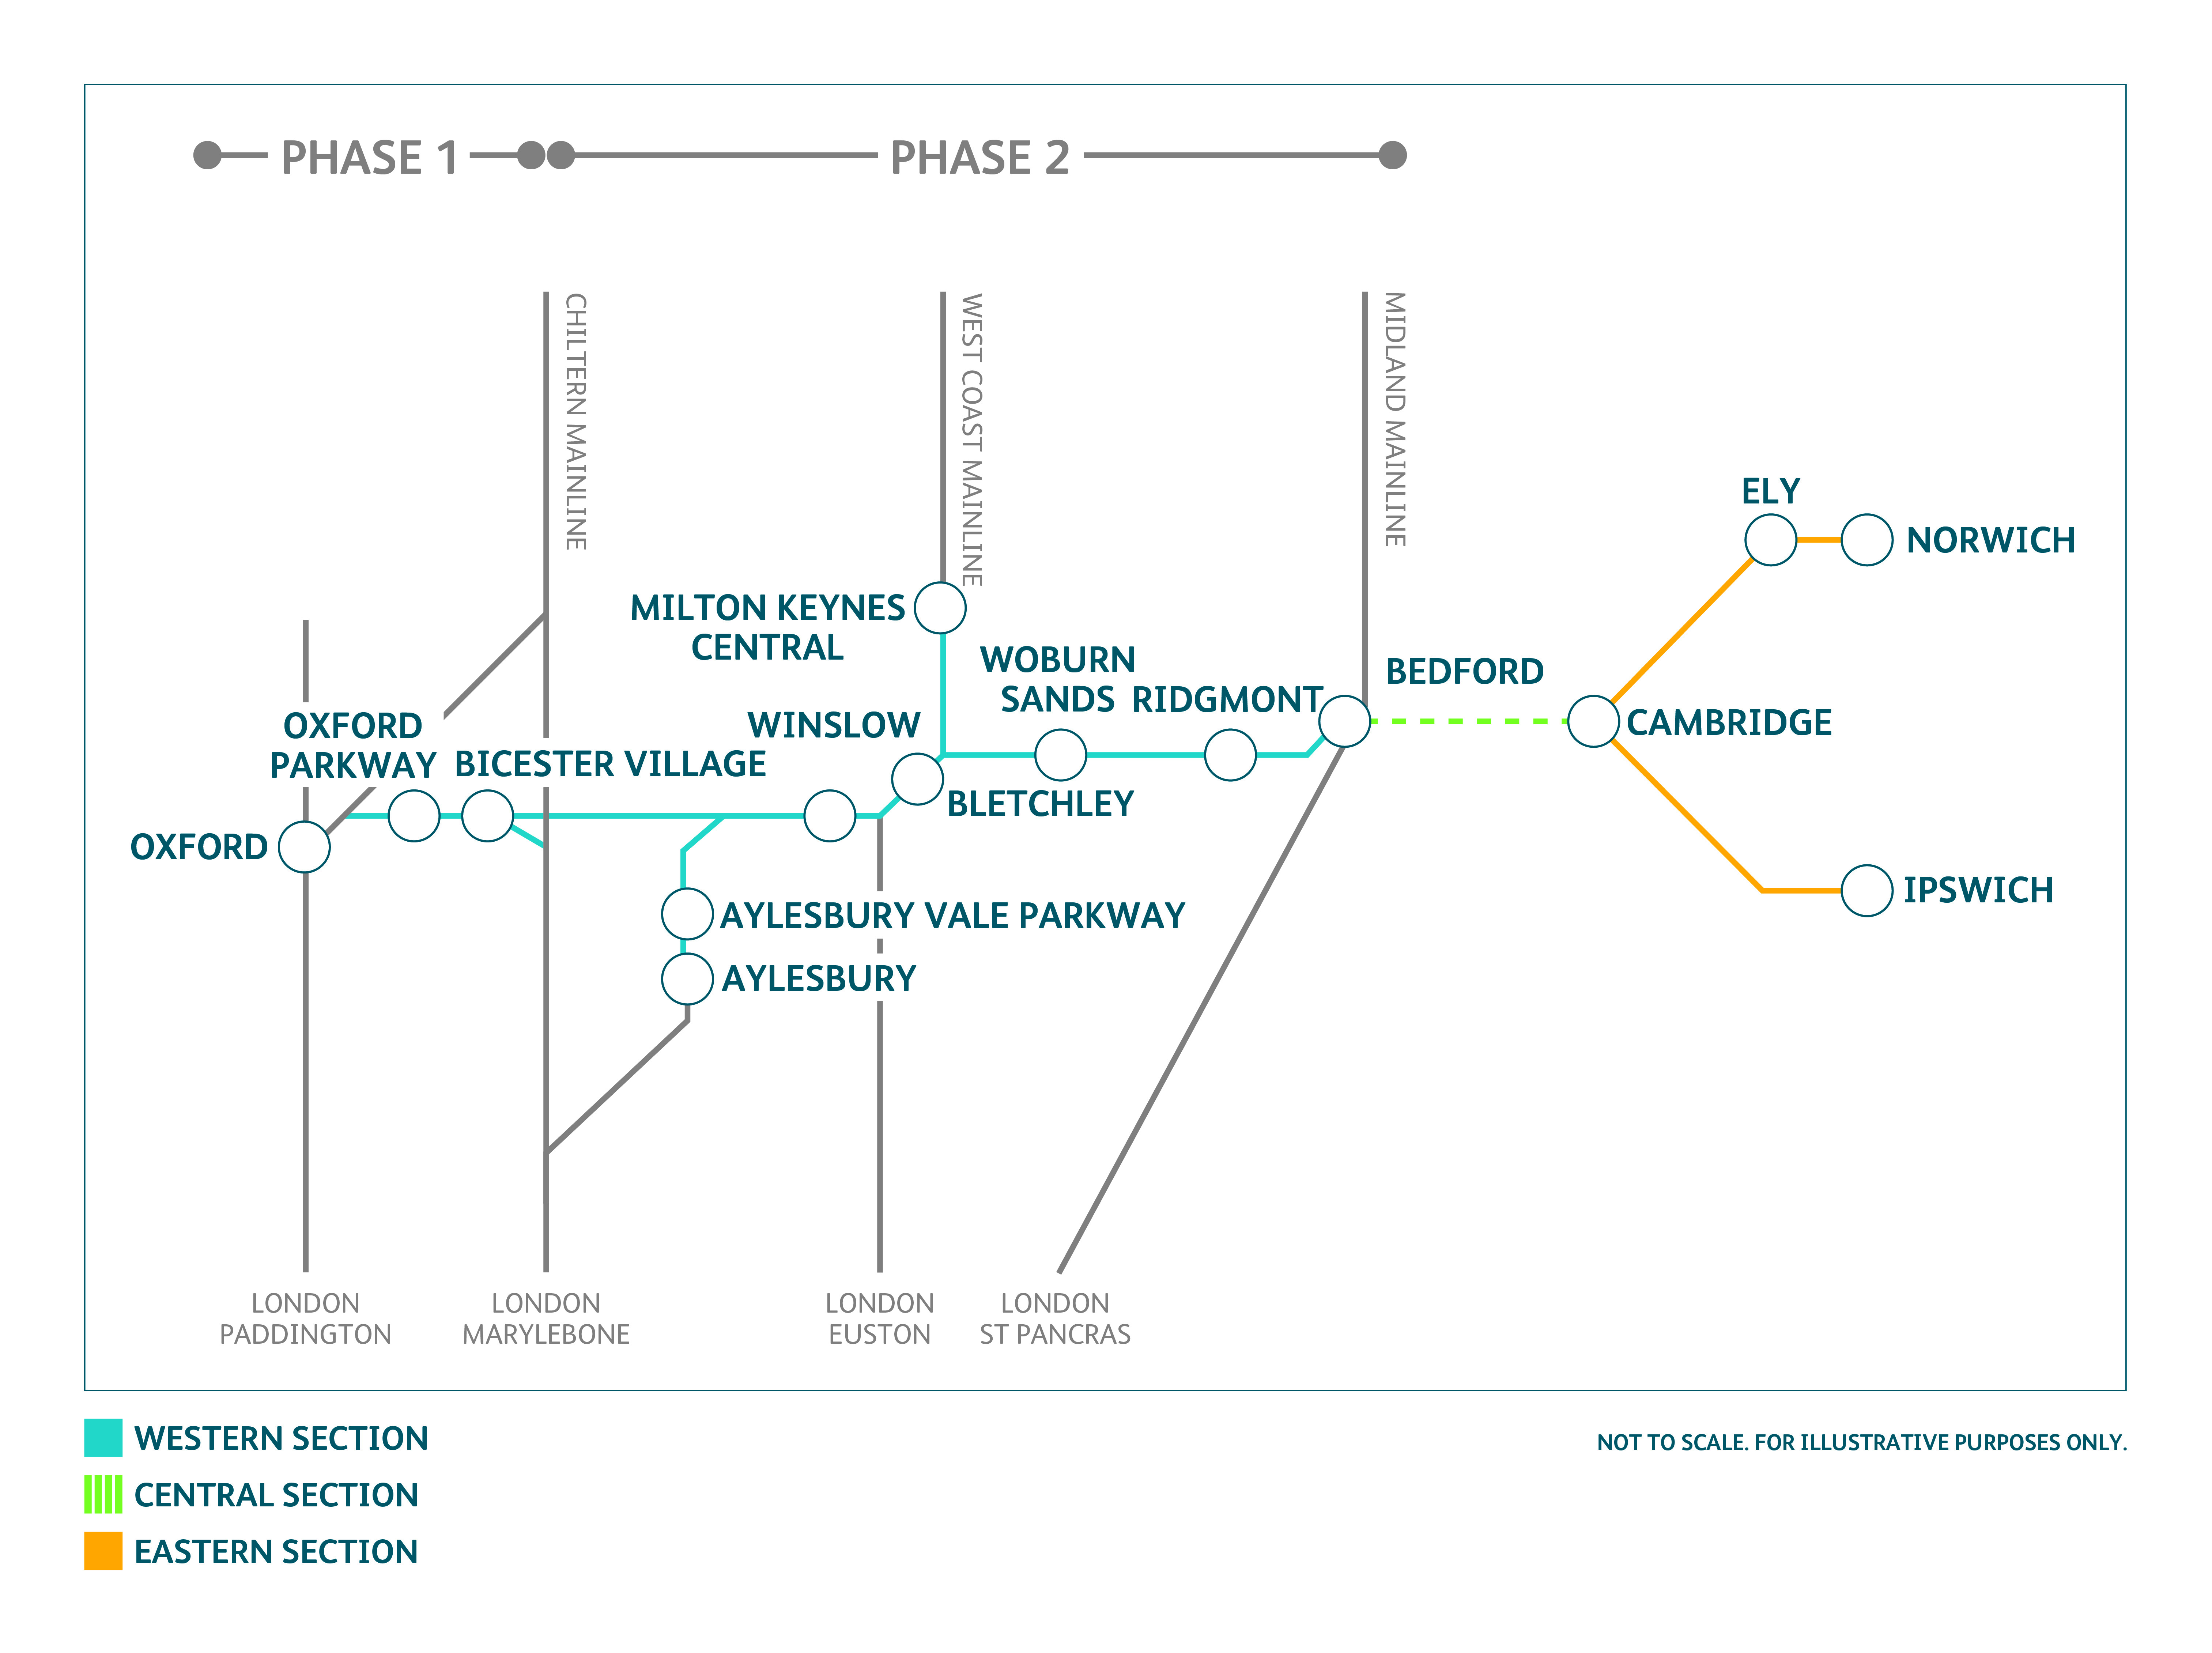 home network diagram submited images wire data schema u2022 xfinity home network diagram free download wiring diagram schematic [ 6050 x 4521 Pixel ]